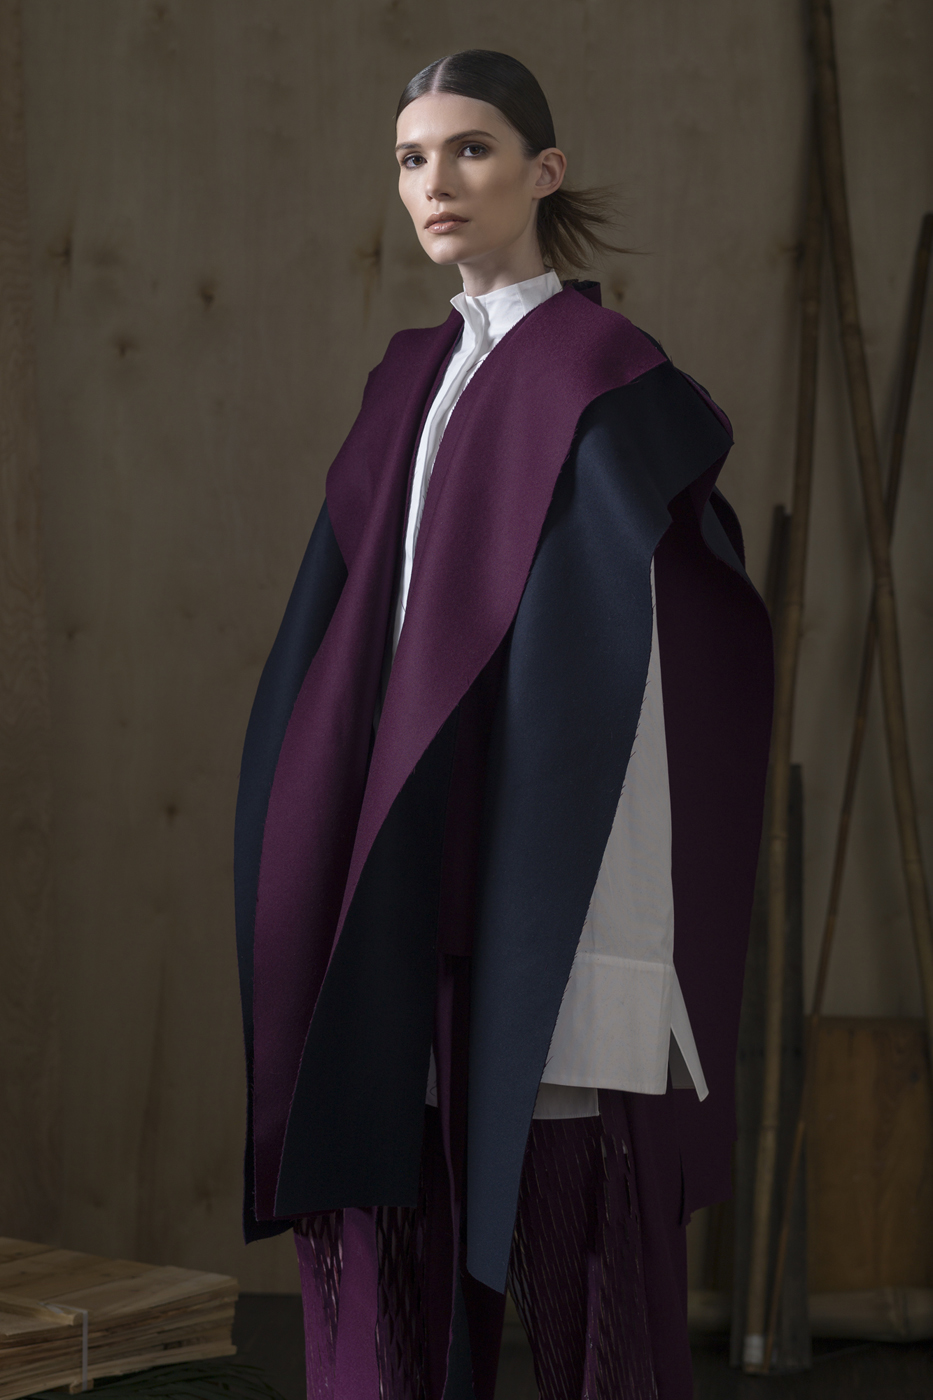 Oxford Cotton L/SLV Blouse with Exposed Back, Side Slits and Seam Extrusion Details  Paired With  Plum Slitted Trousers and Staggered Wool Paneled Over-Vest.